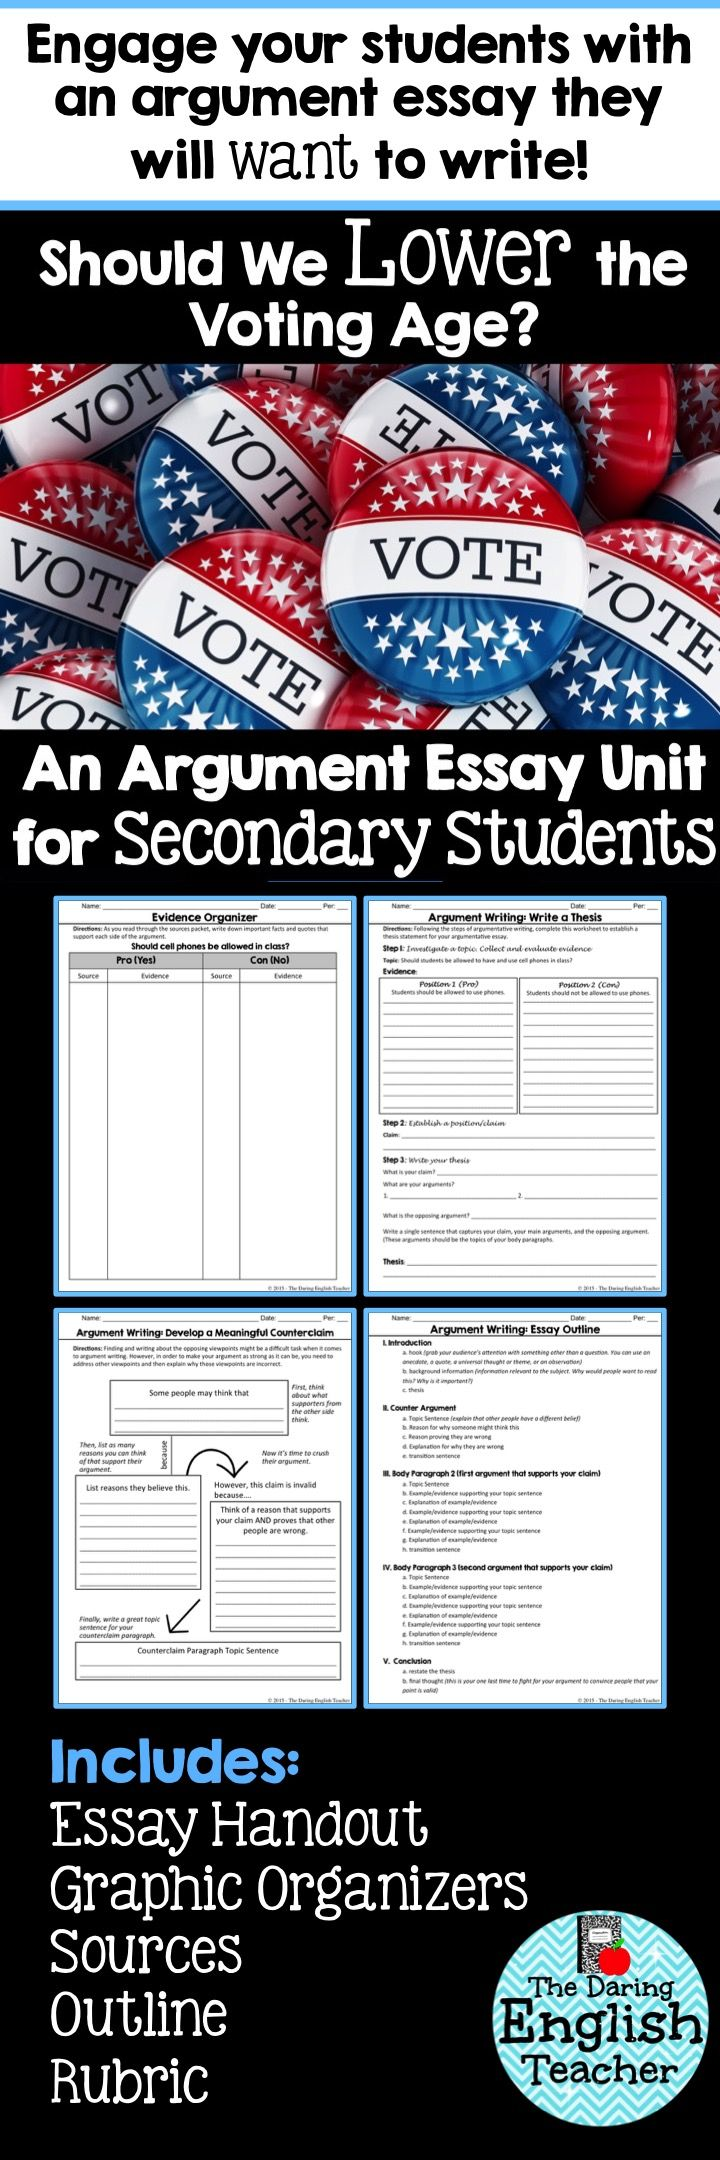 patterns in essay writing Learn more about writing a famous essay right here what is important to understand is the need to bring in the facts, figures and all other relevant details coherently.